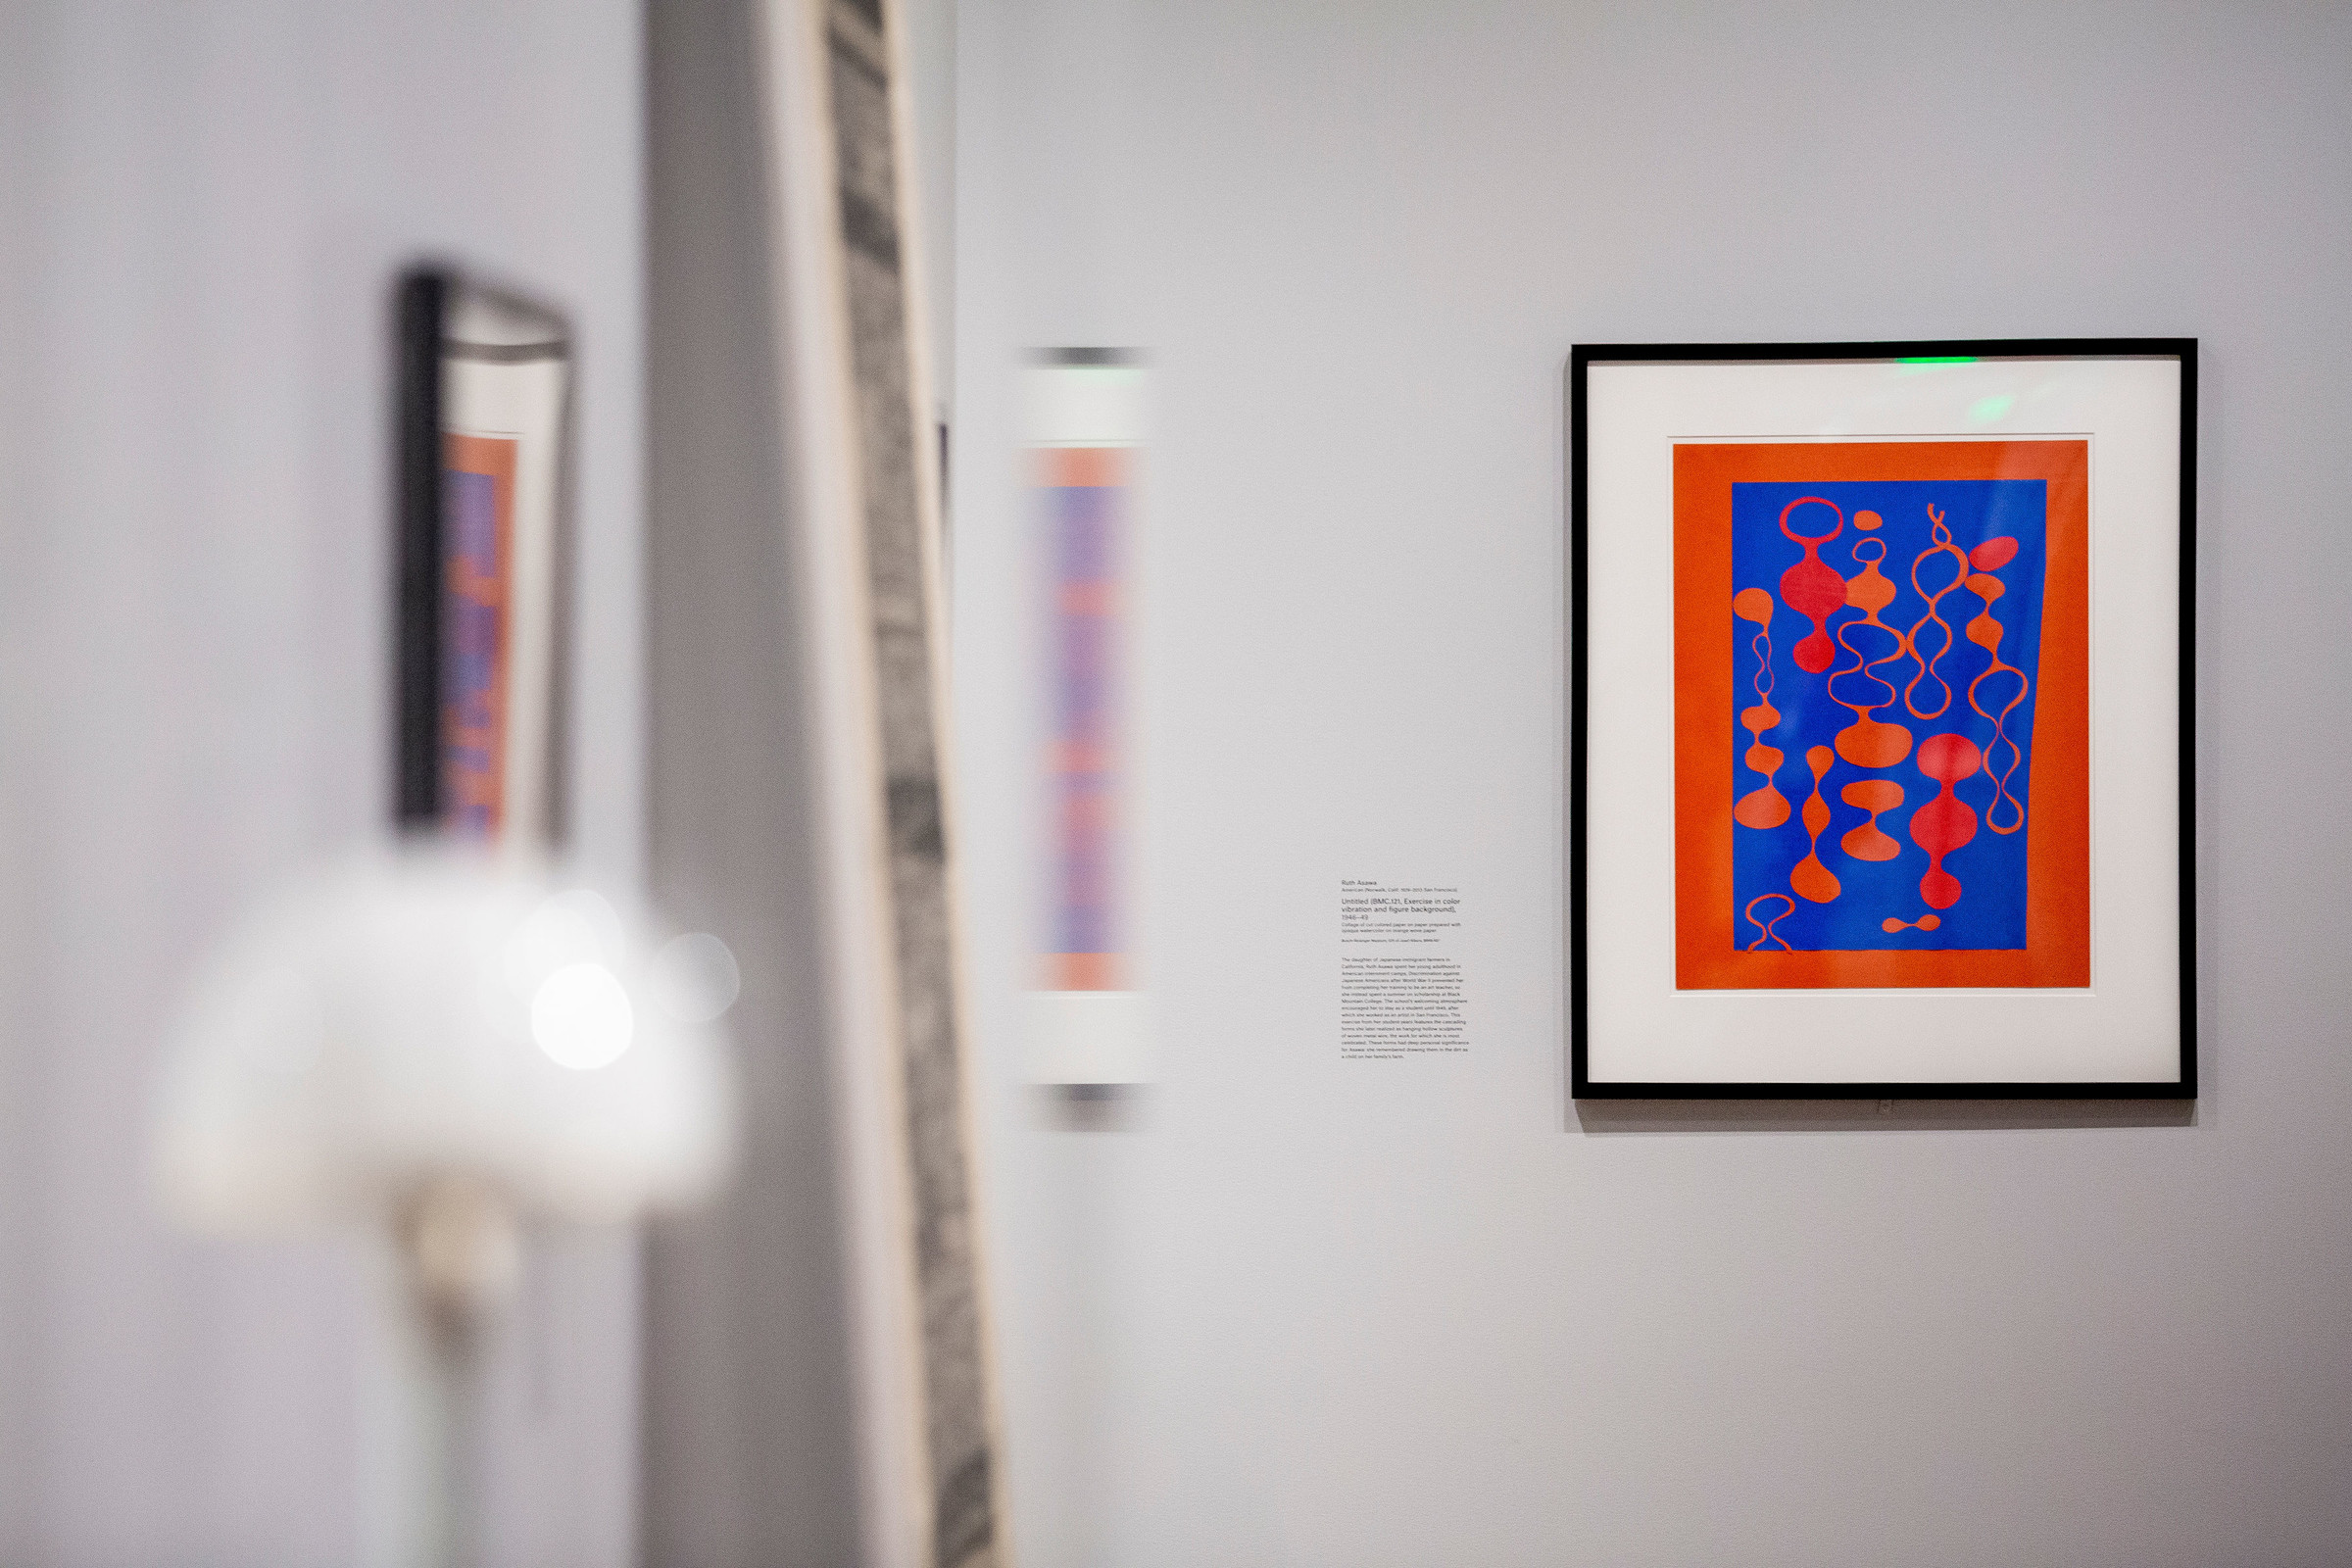 This photograph shows on a gray gallery wall a black-framed collage in the right half of the image. The collage depicts several orange and red biomorphic shapes, some of which are filled in and some outlined, against a blue background. The collage is bordered by red paper, and the mat is white. The remainder of gallery at left appears out of focus.